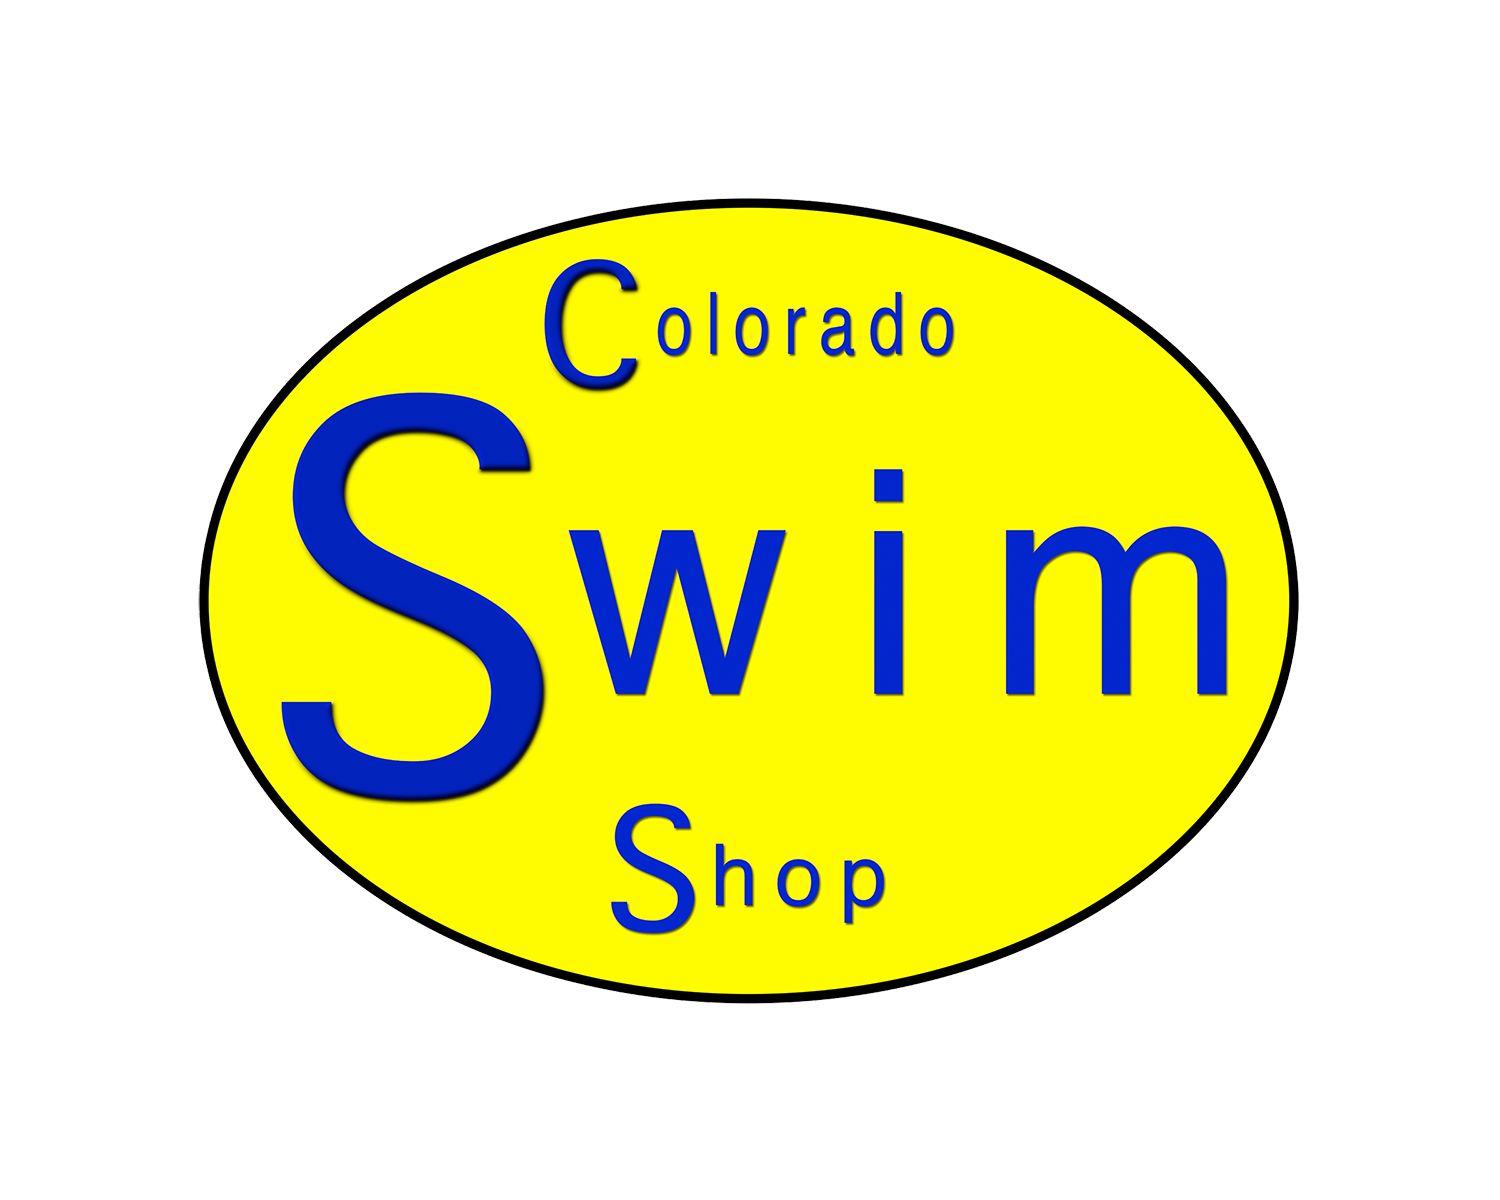 Colorado Swim Shop